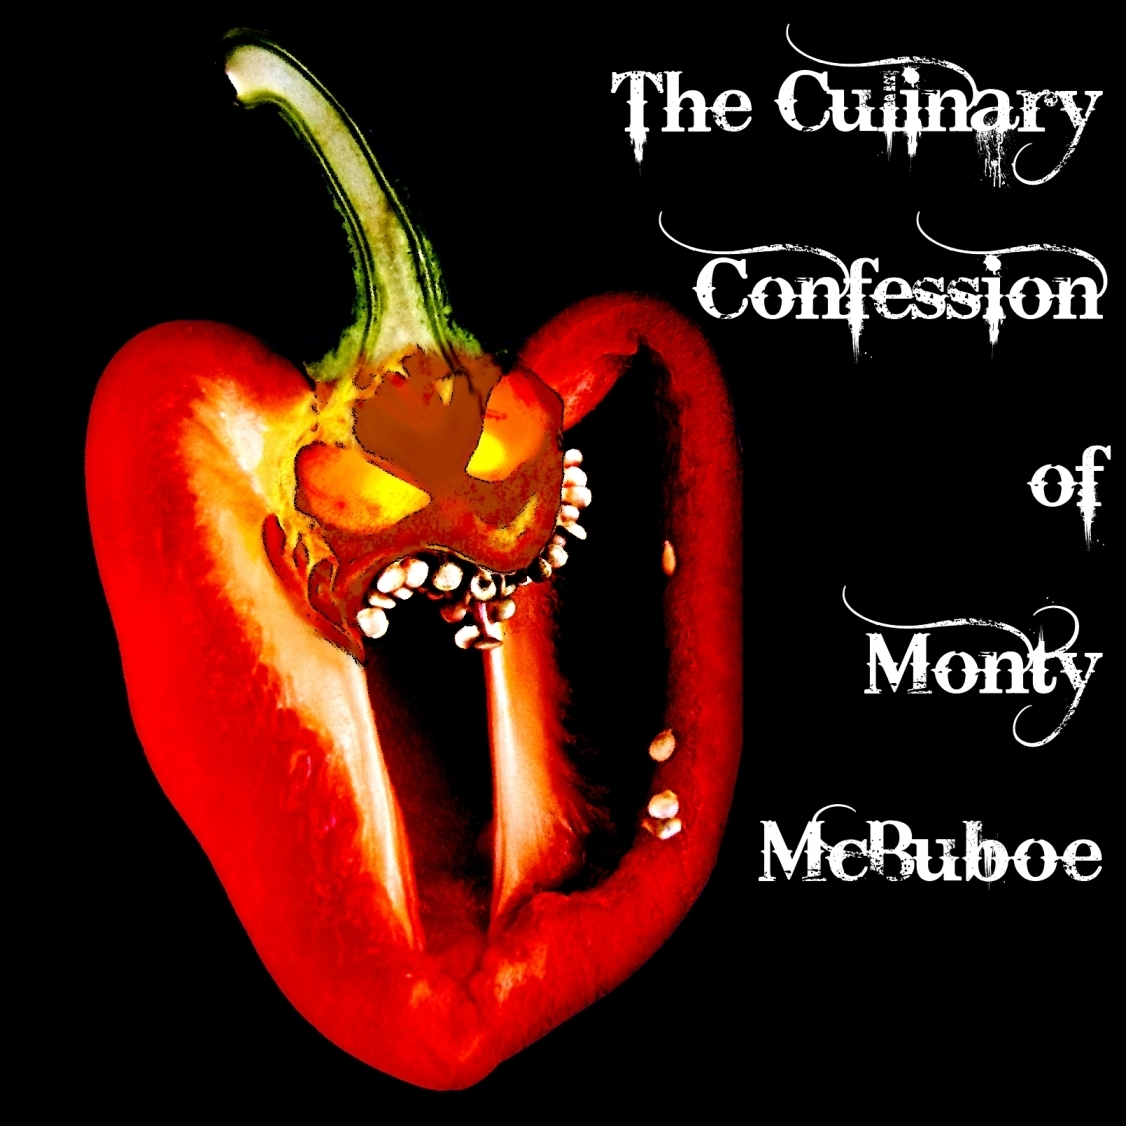 The Culinary Confession of Monty McBuboe